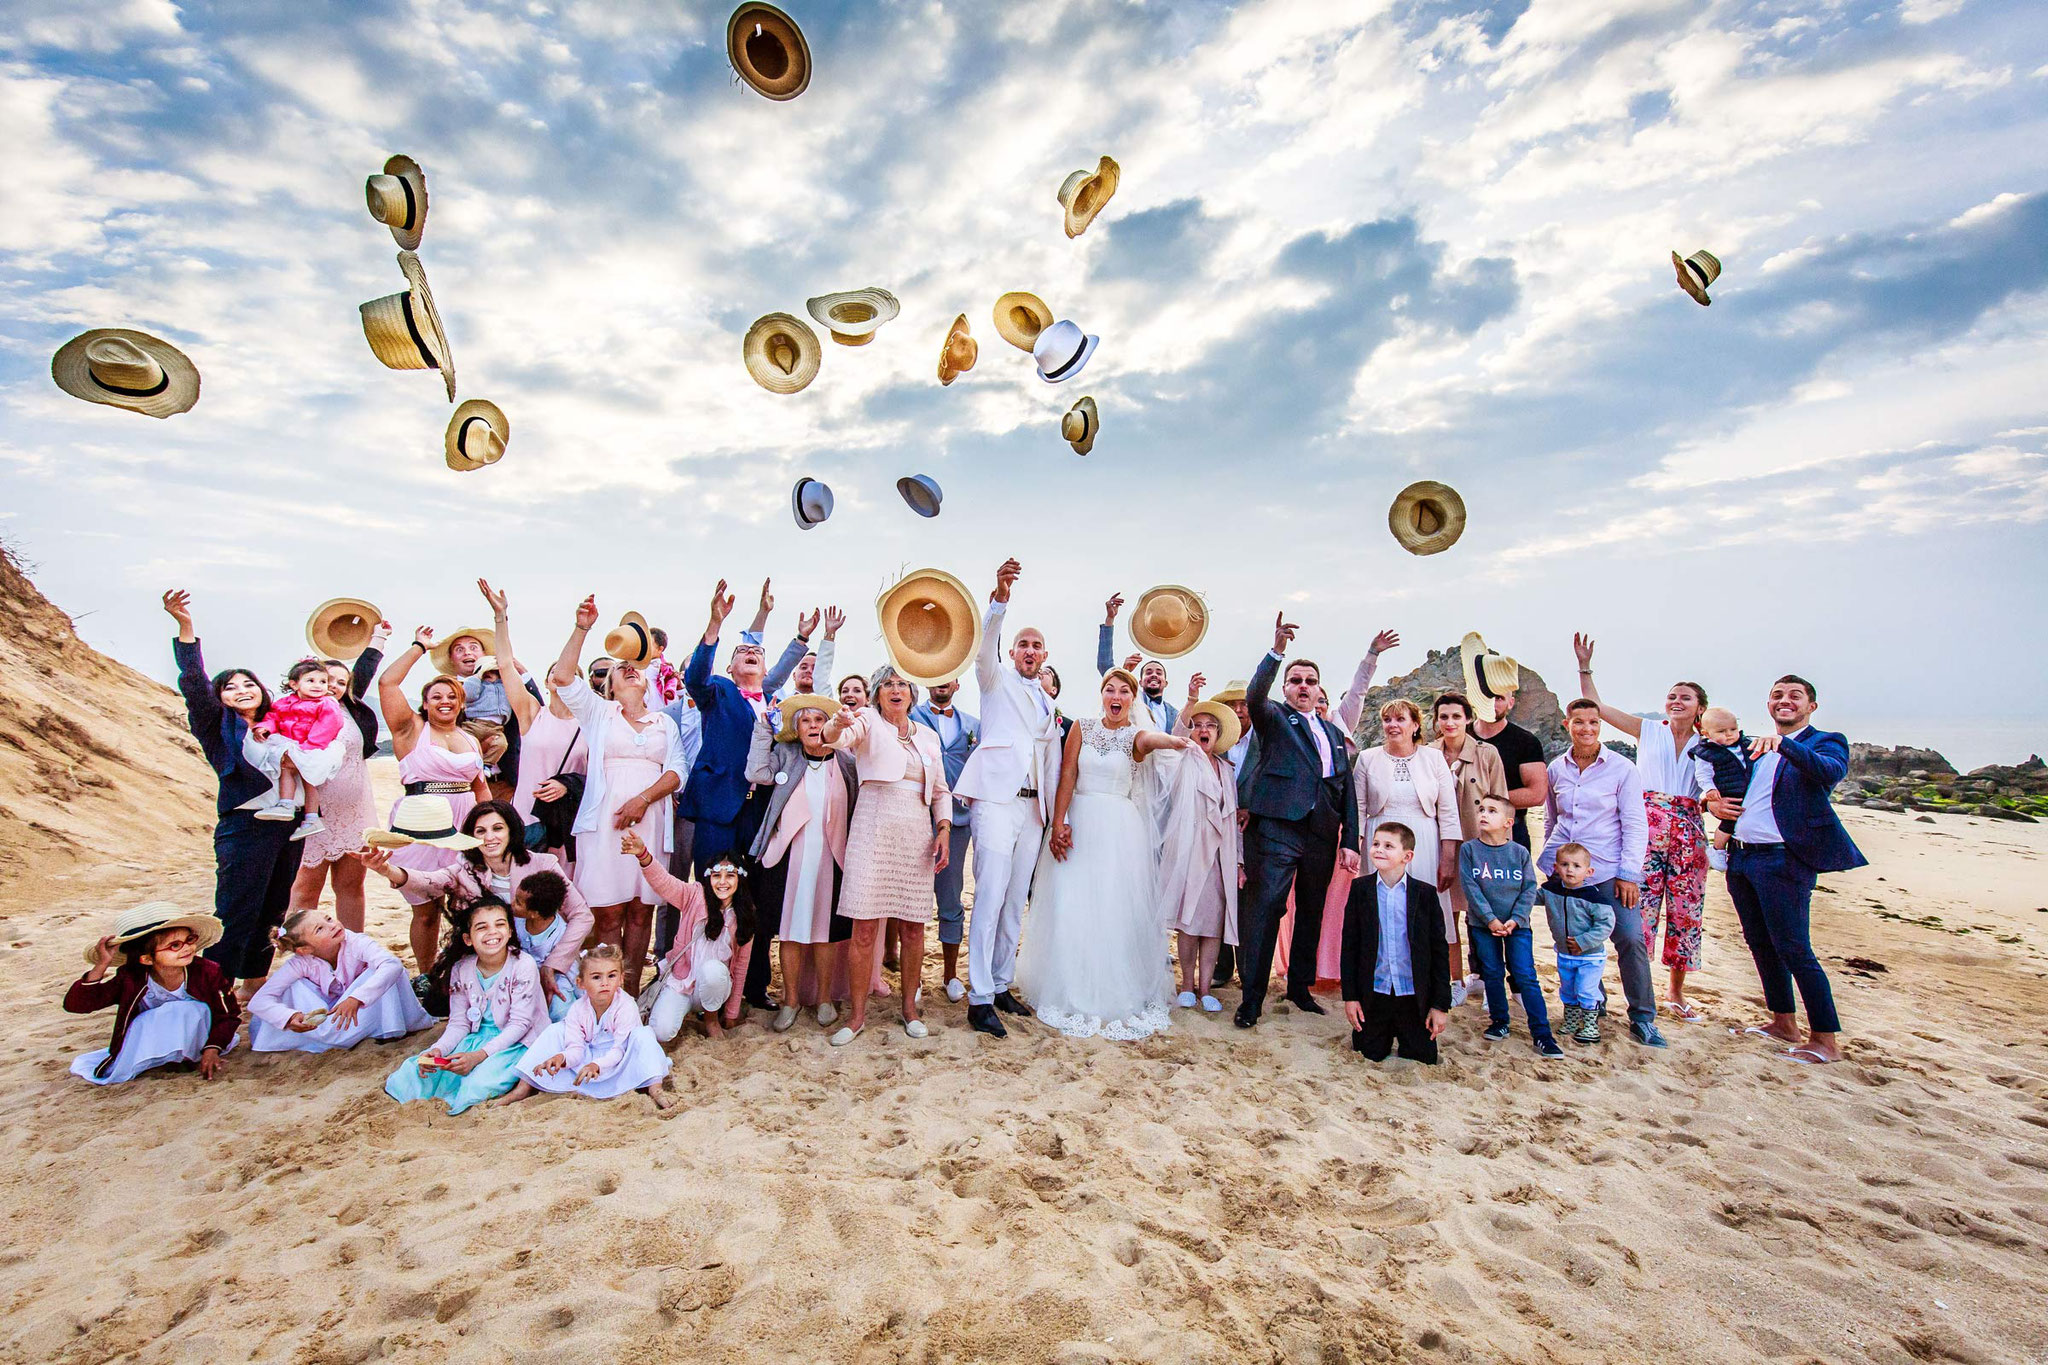 Mariage photo de groupe , Bride and groom photo sur la plage au coucher du soleil